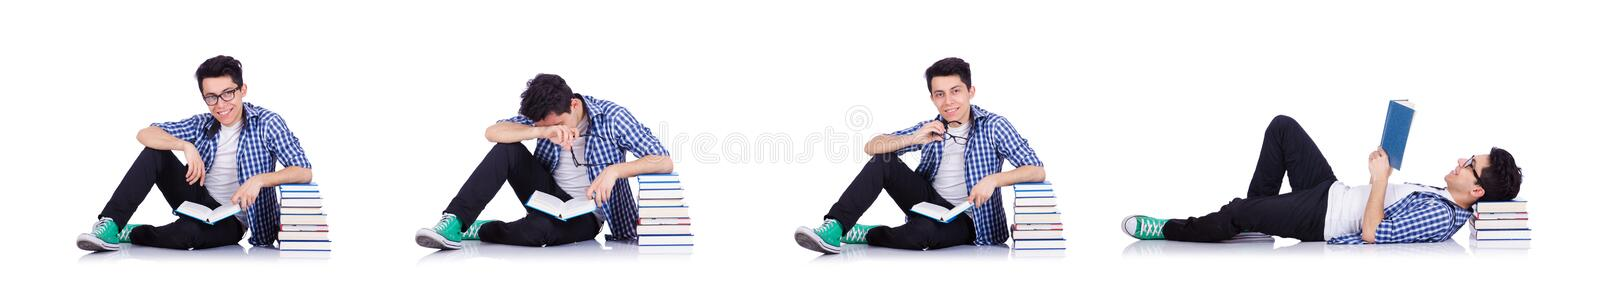 Student with lots of books on white royalty free stock image